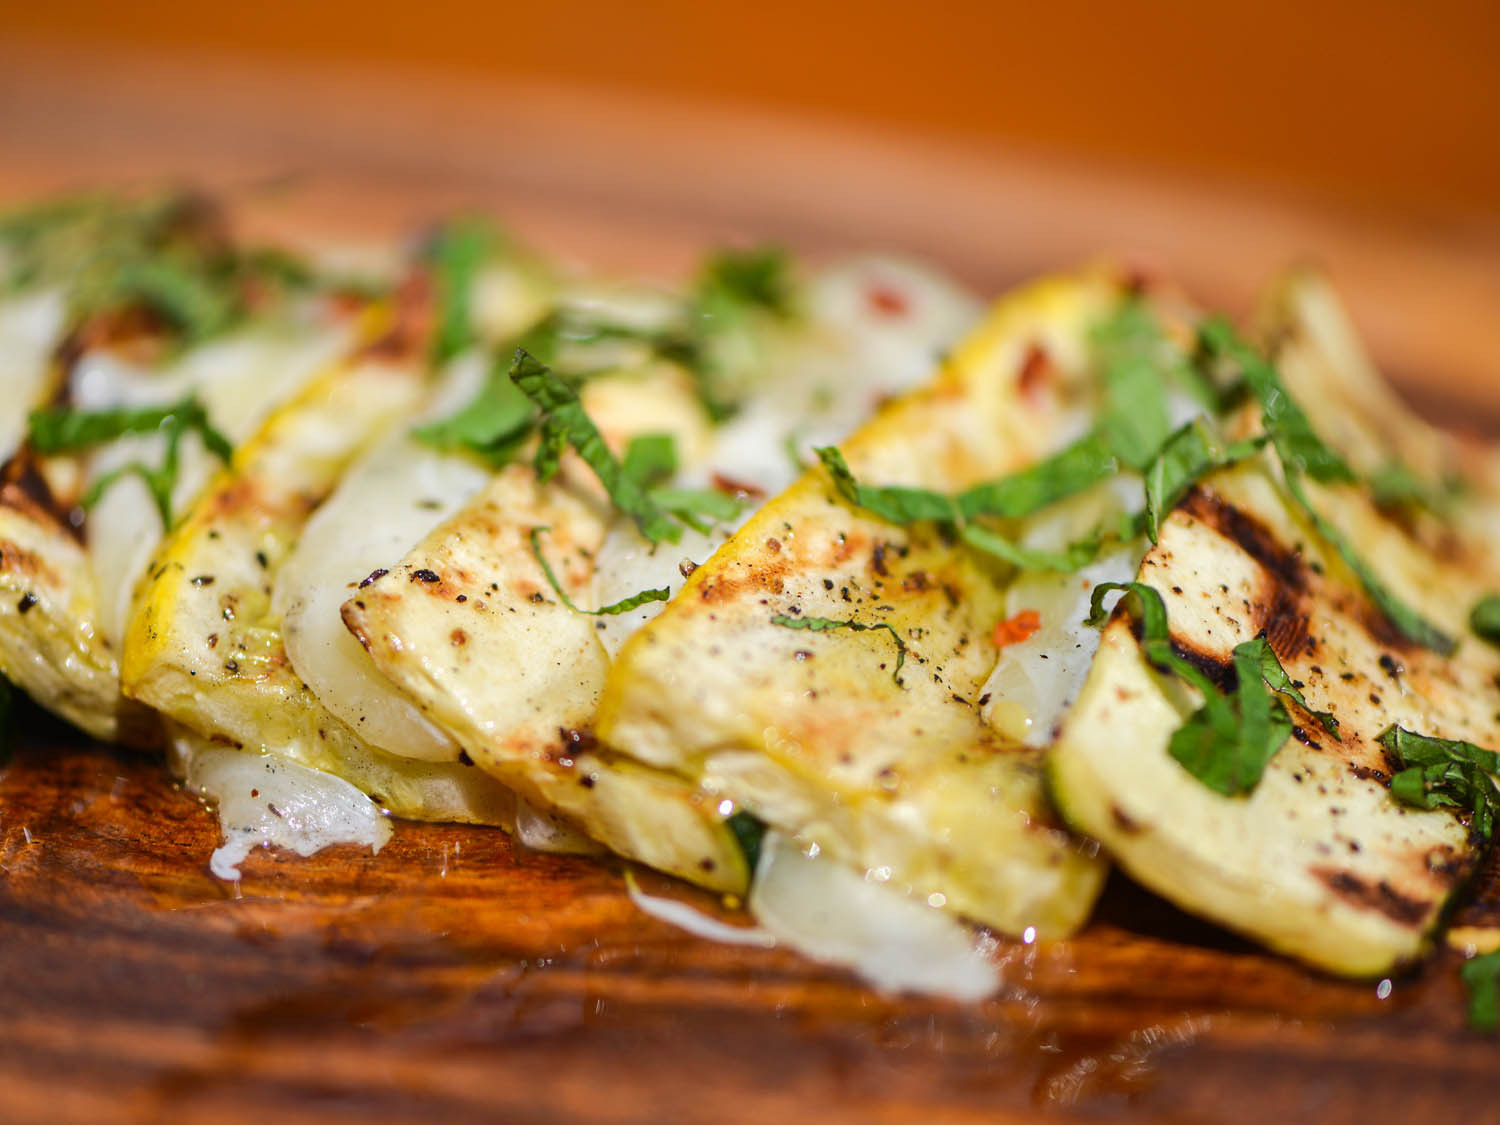 Yellow Summer Squash Recipes  Grilled Summer Squash and Kasseri Cheese With Lemon and